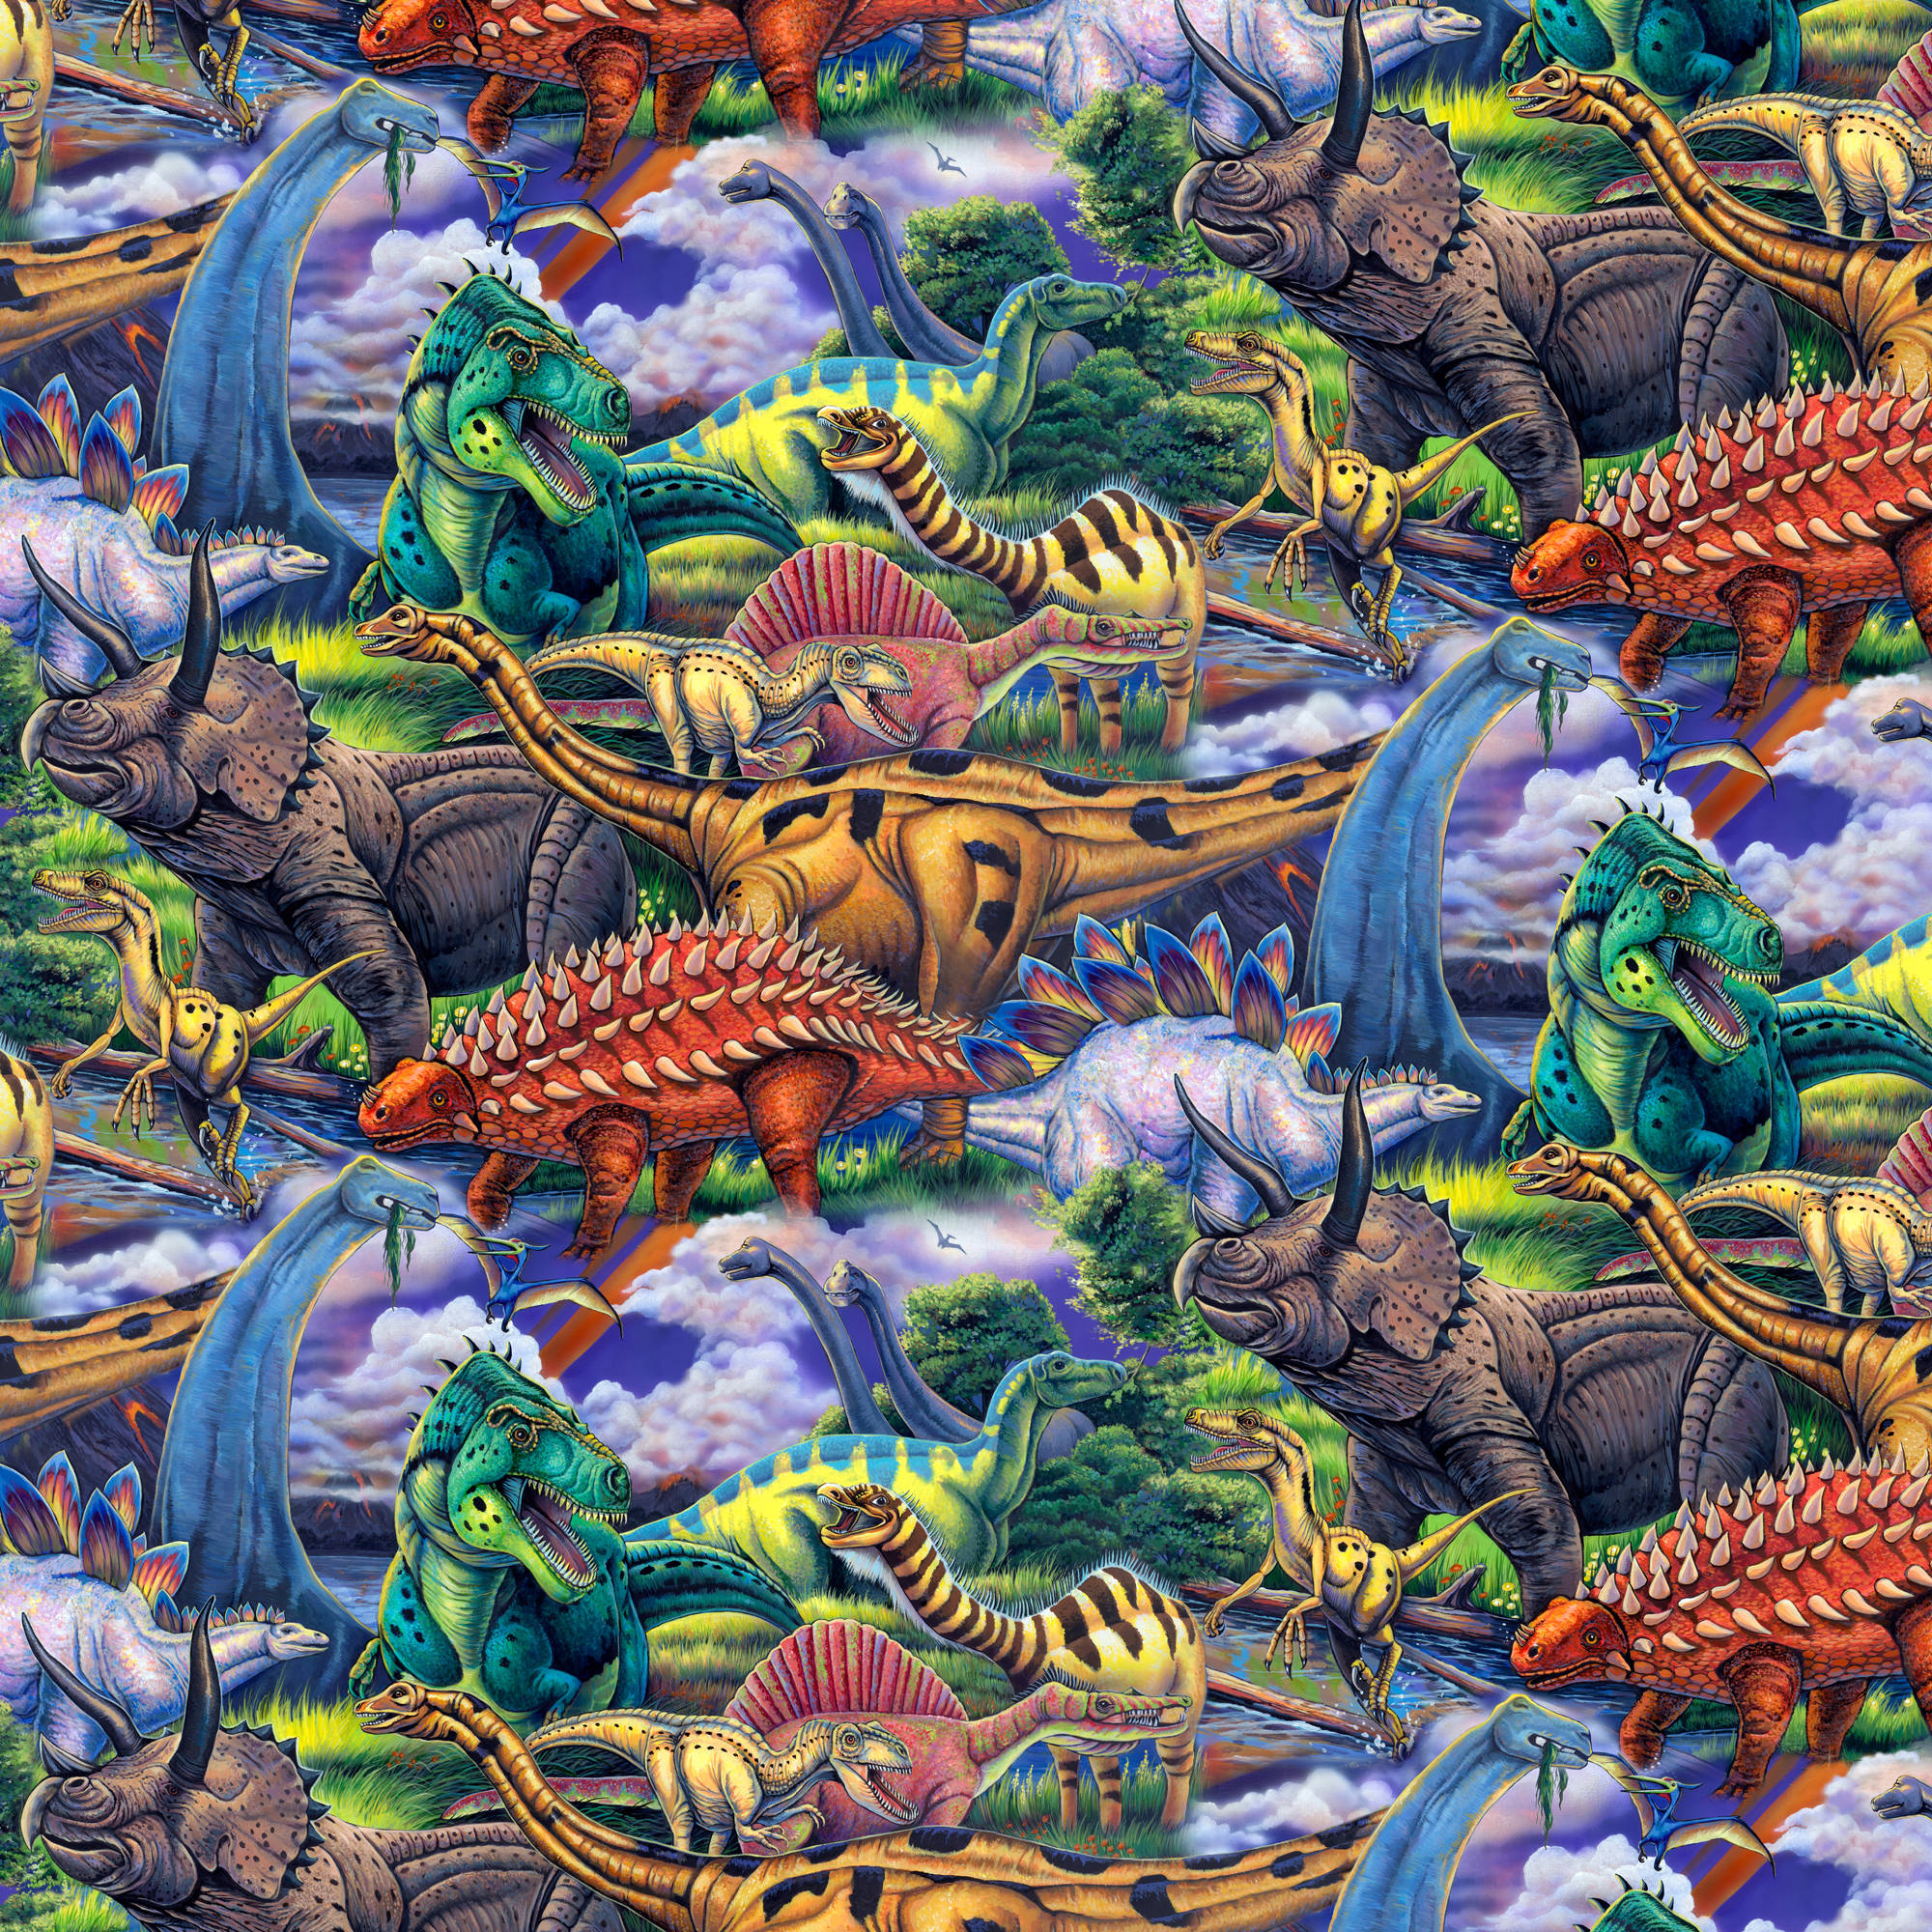 Age Of The Dinosaur Quilting Cotton Fabric By The Yard, 44""